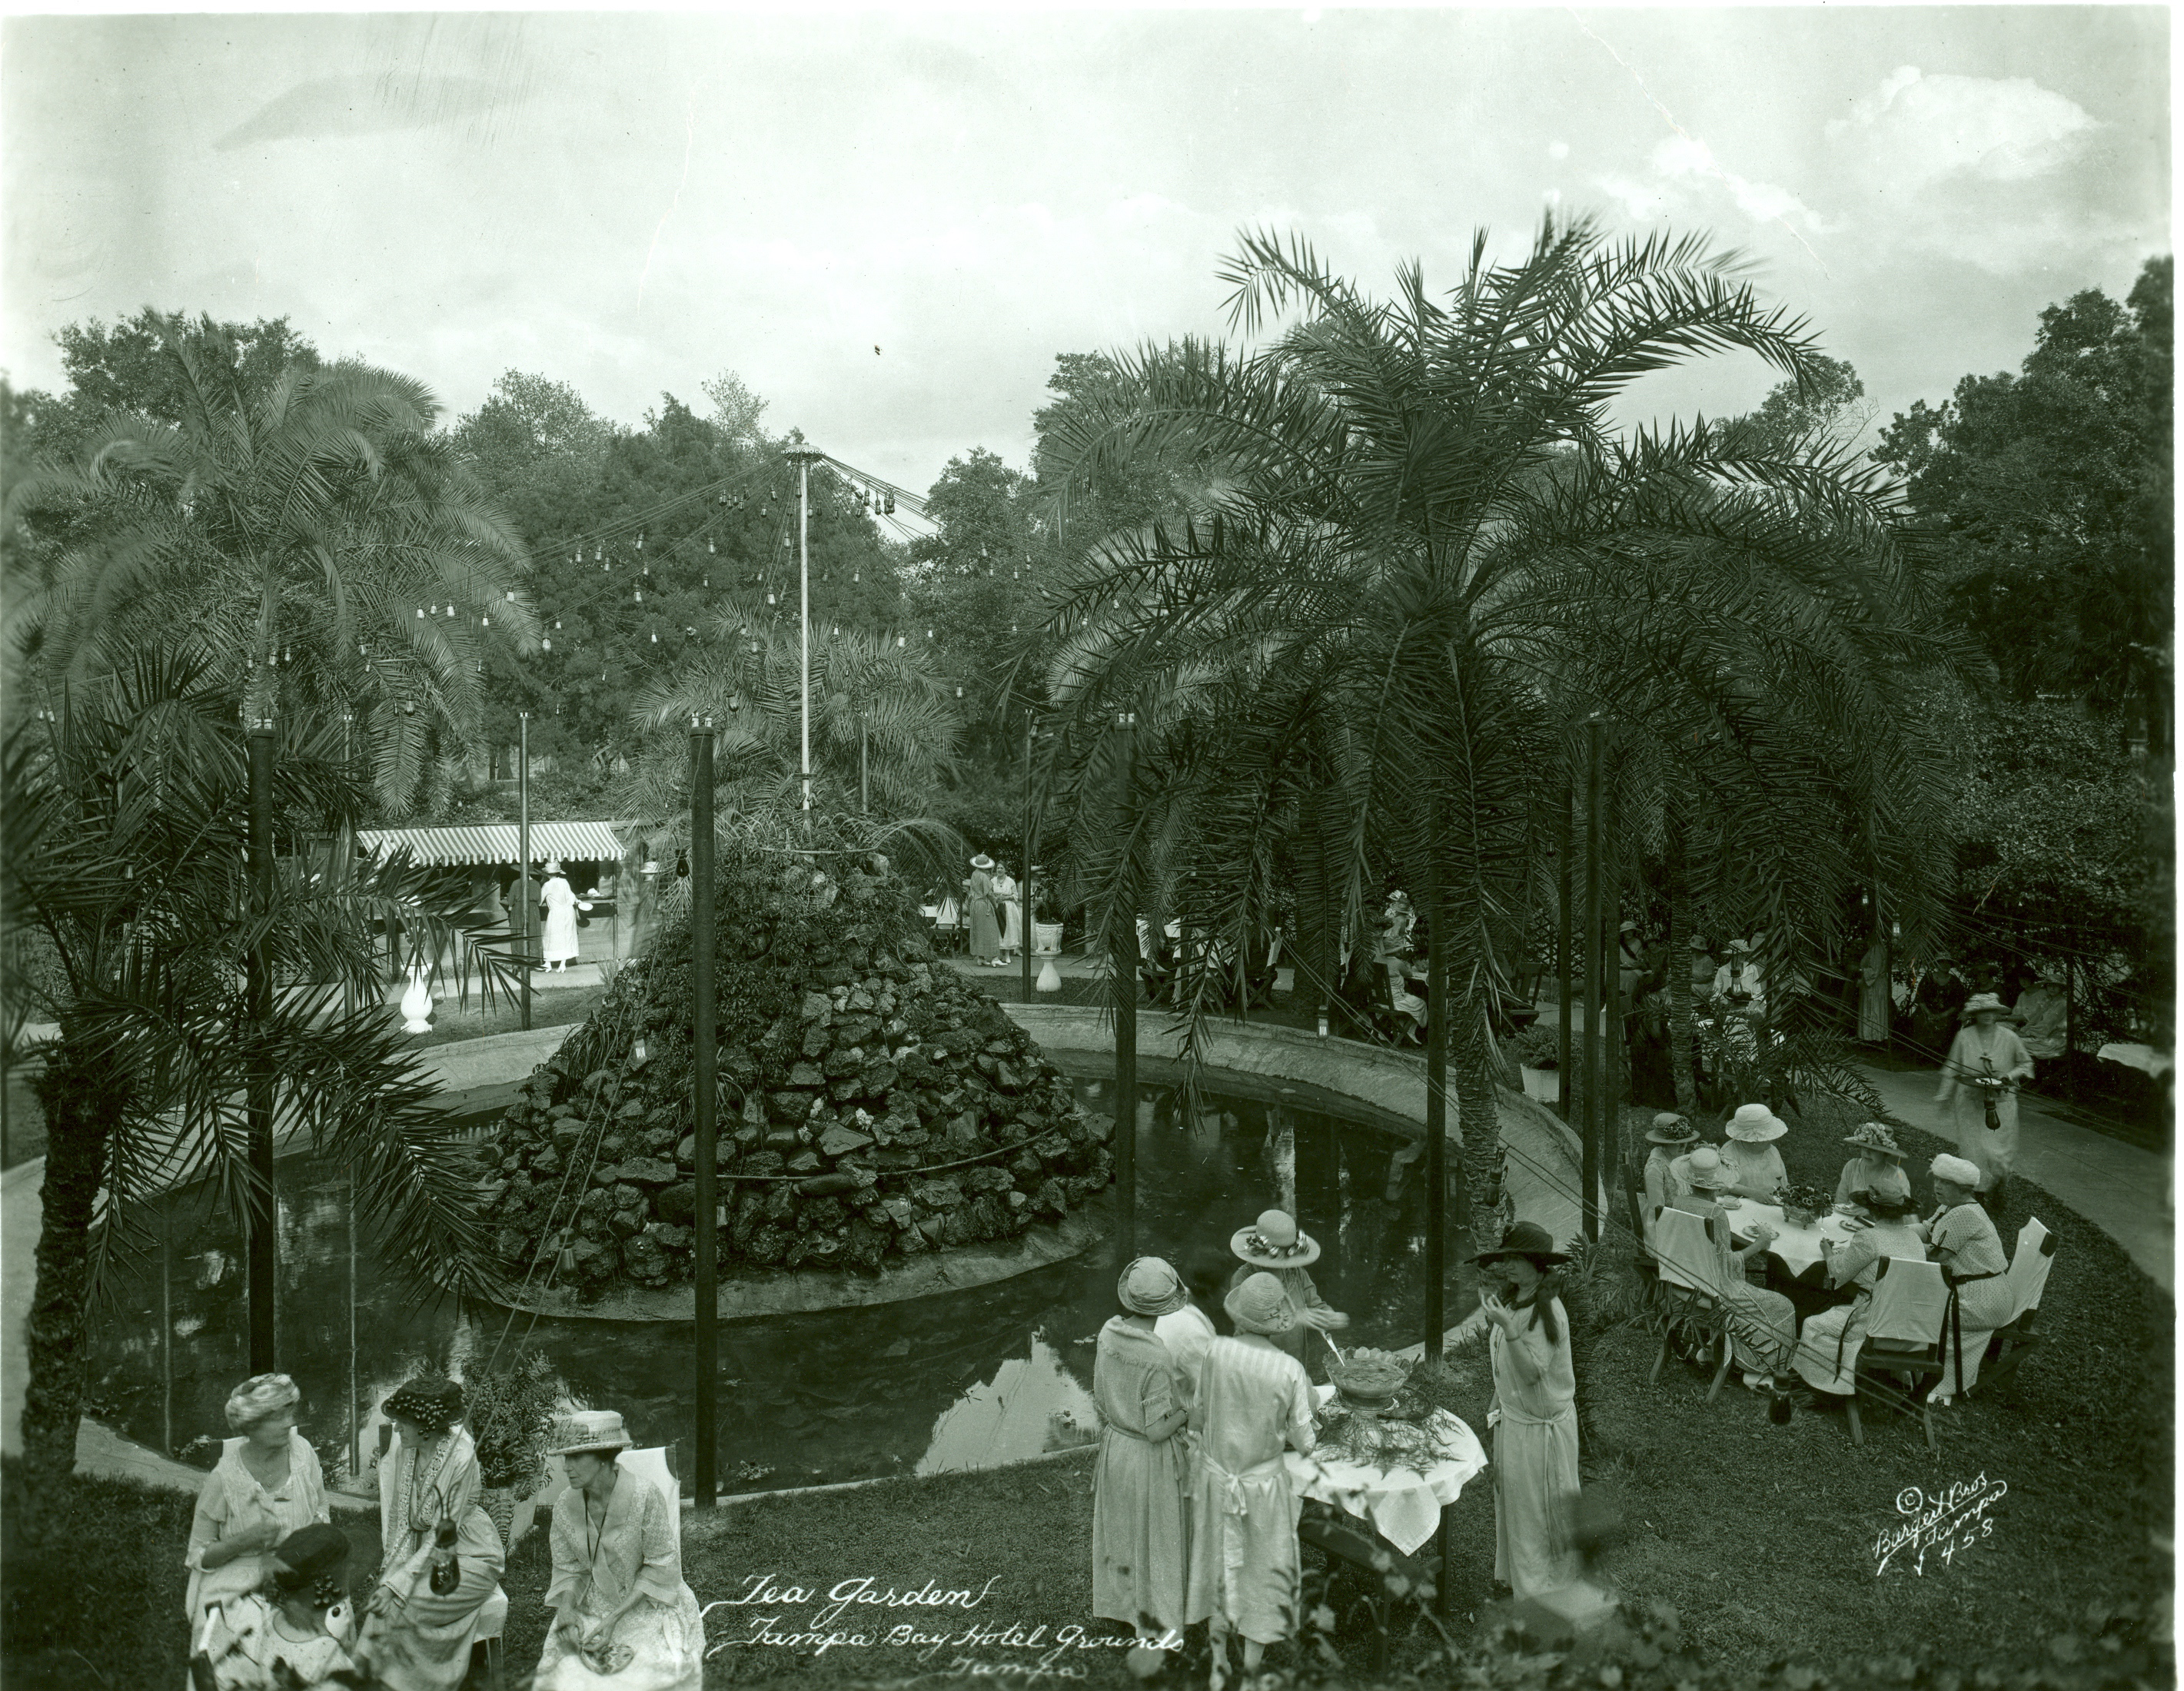 tea garden at Hotel, small round tables with 4-5 ladies at each, fancy dress, large rock fountain in center, lush greenery